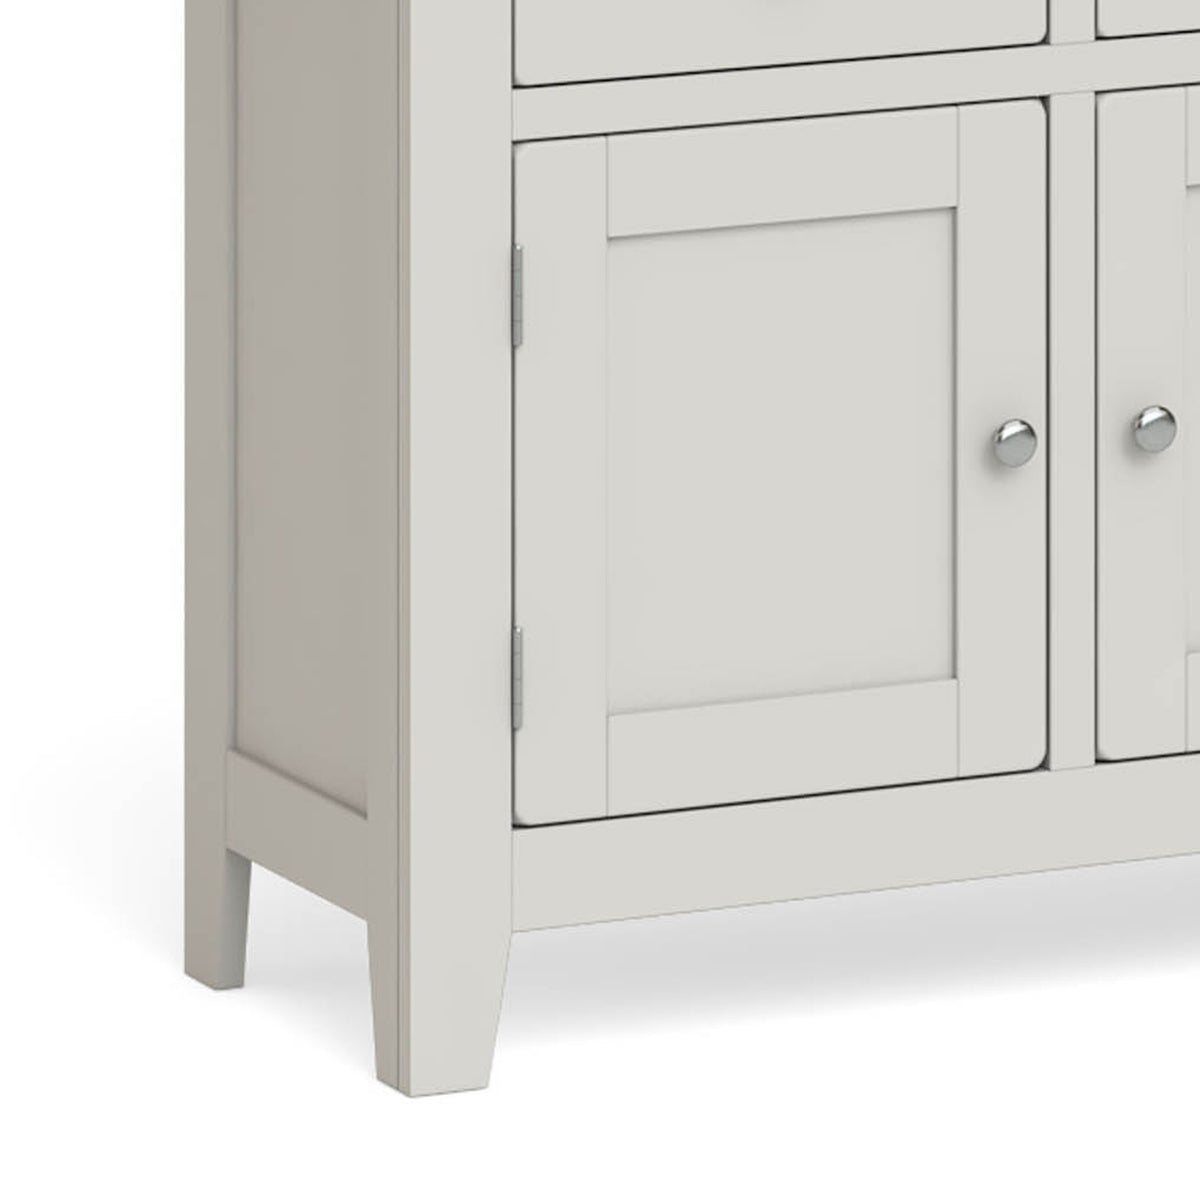 Lundy Grey Extra Large Sideboard Unit - Close up of Cupboard Door